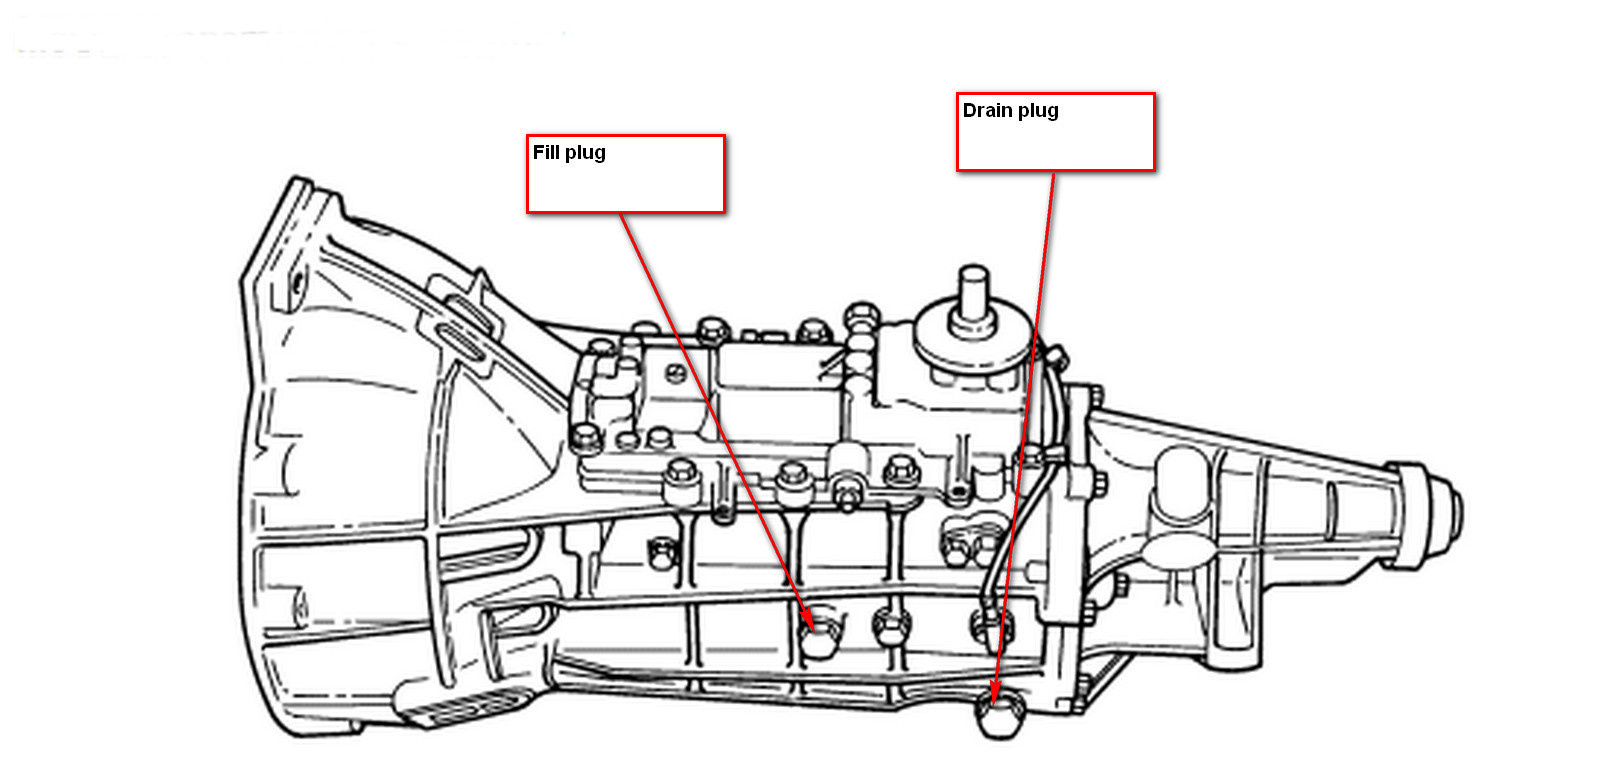 Discussion C292_ds638824 on 2005 Hyundai Elantra Wiring Diagram